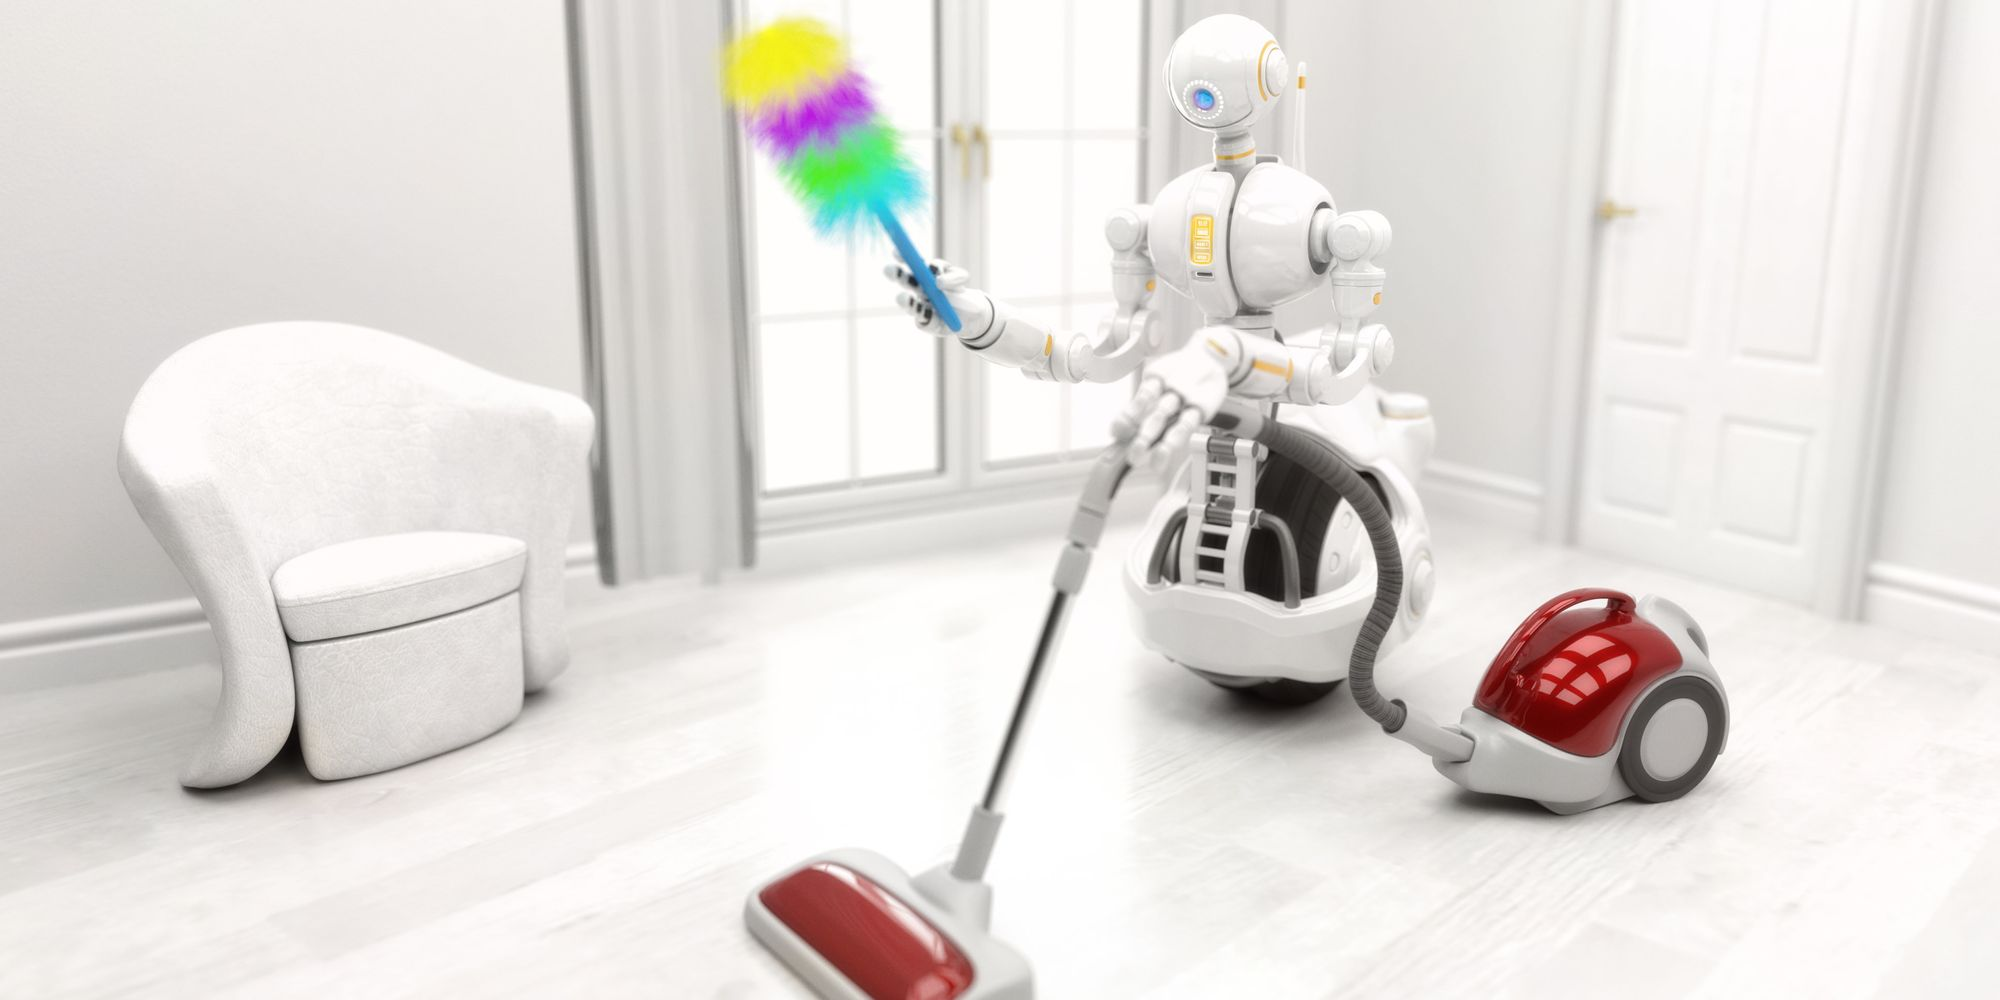 Robots will replace 5 million workers by 2020 report Best home tech products